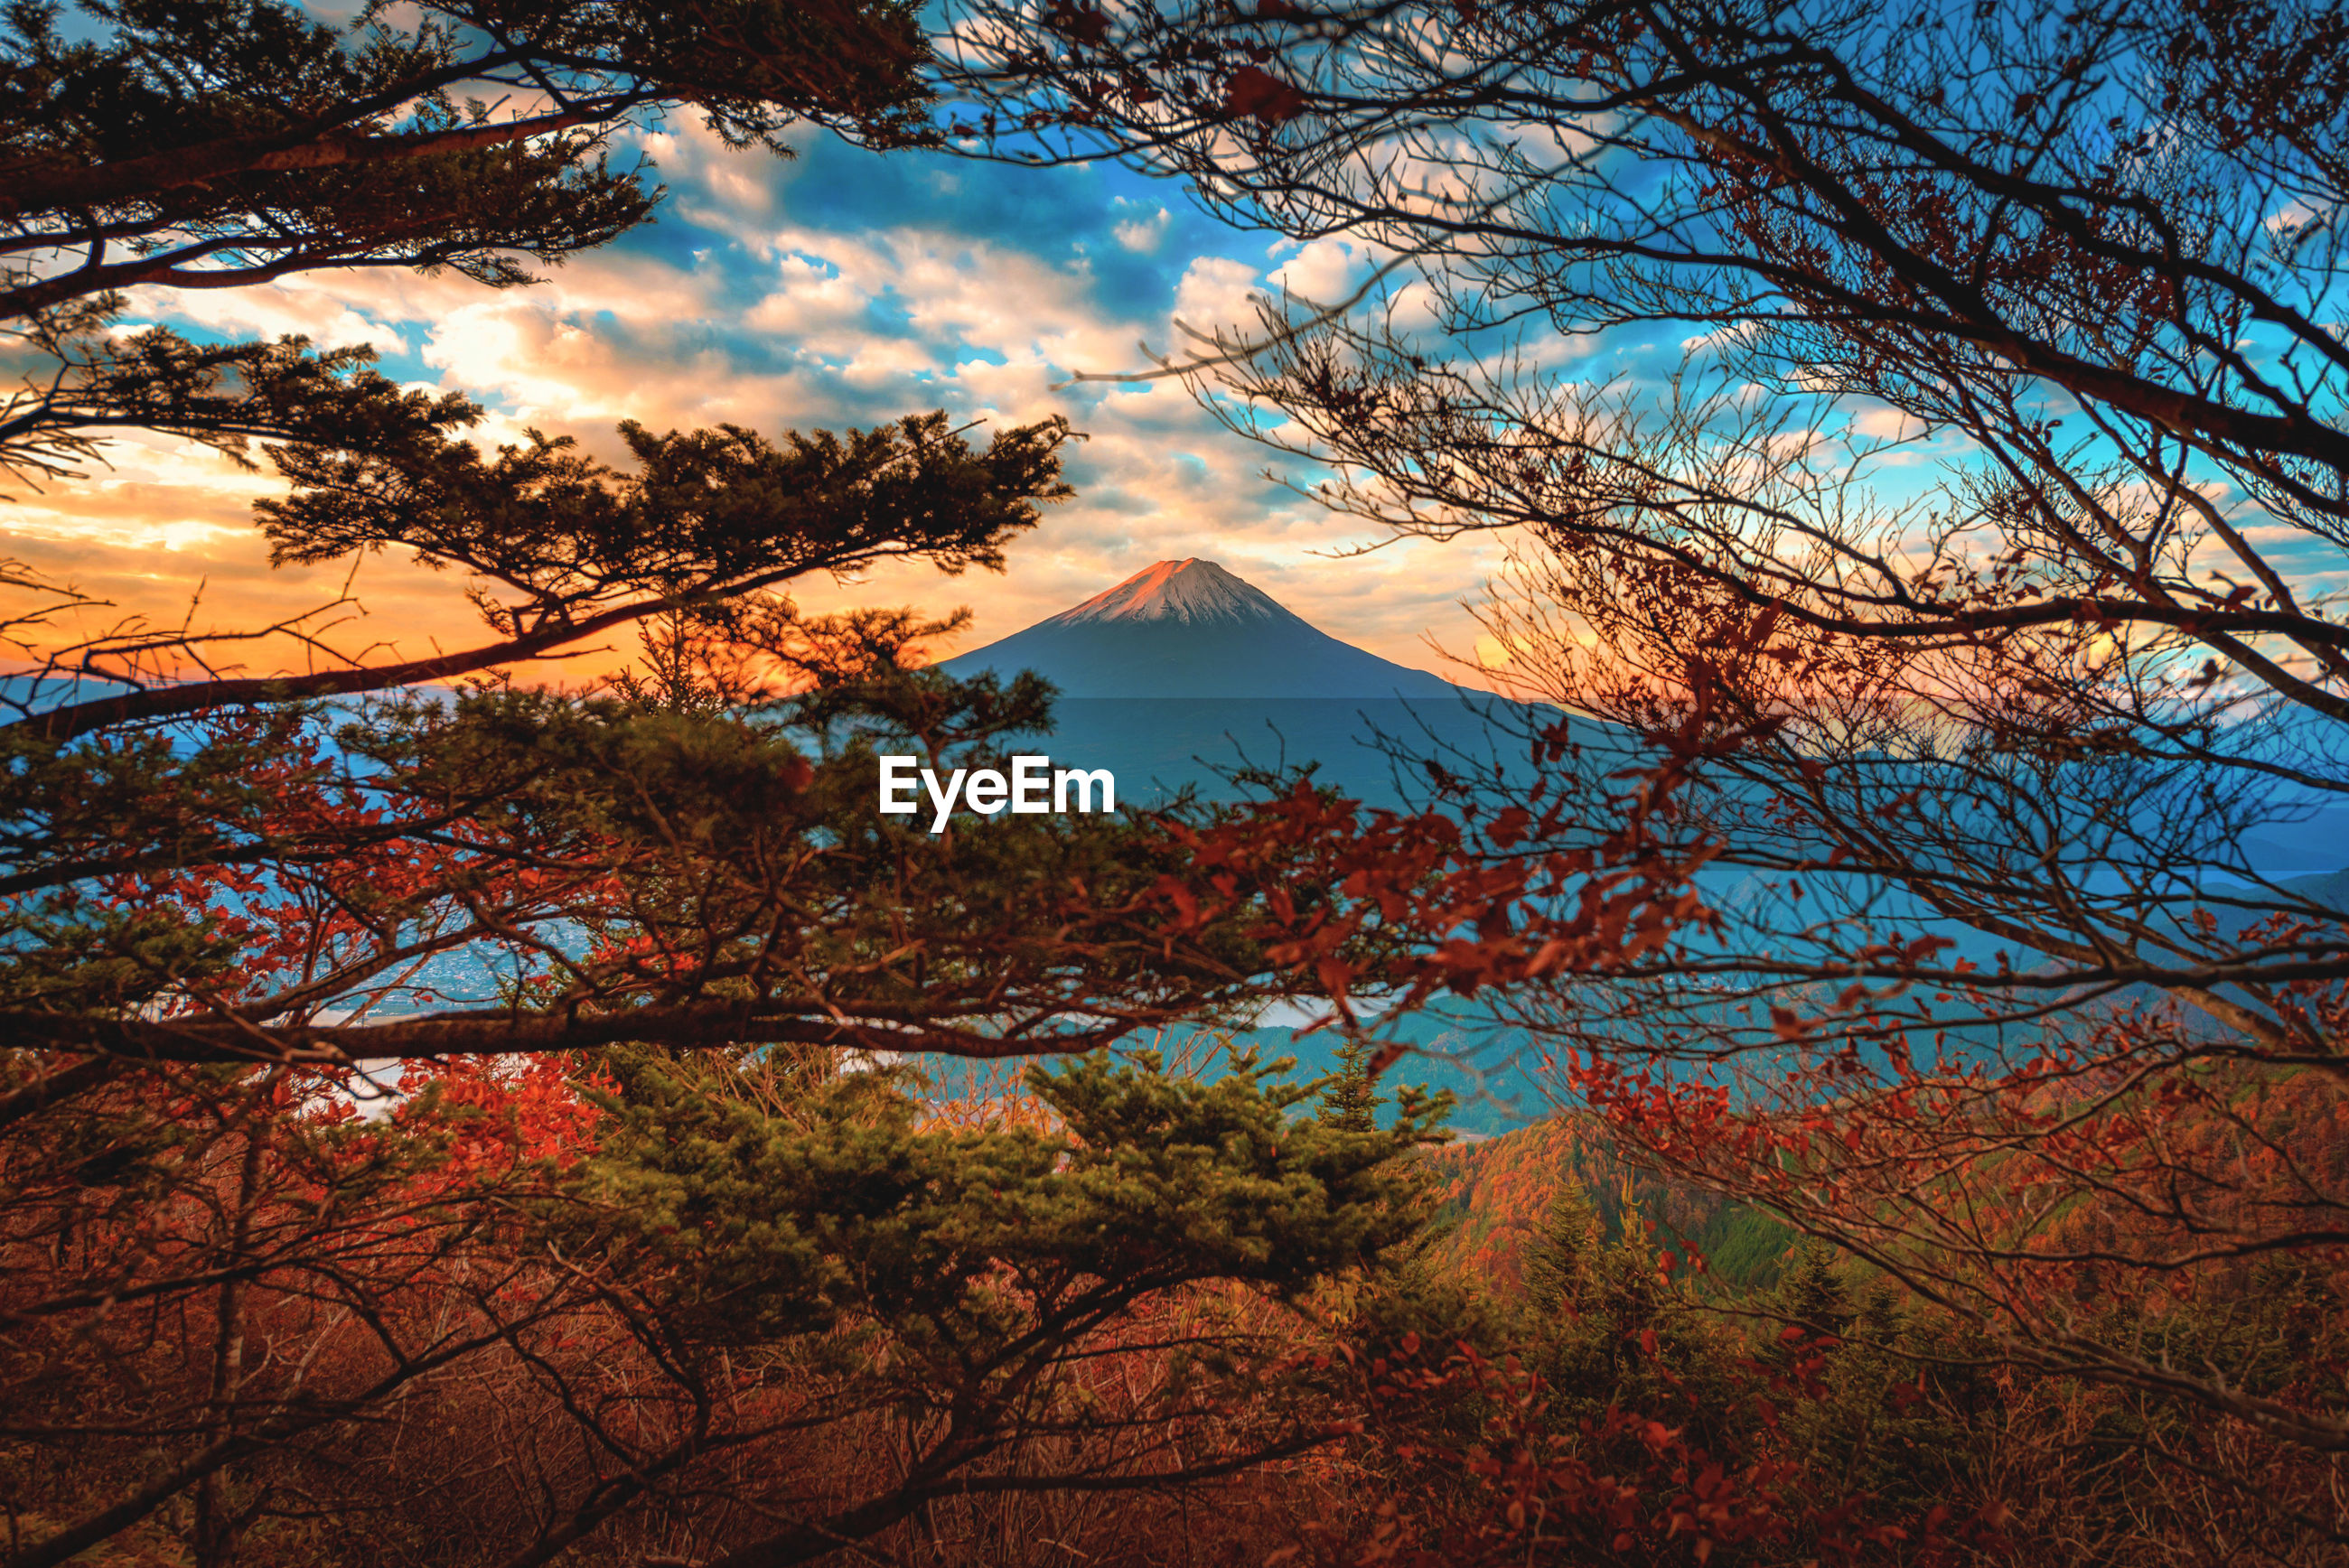 Scenic view of trees against mountain during sunset